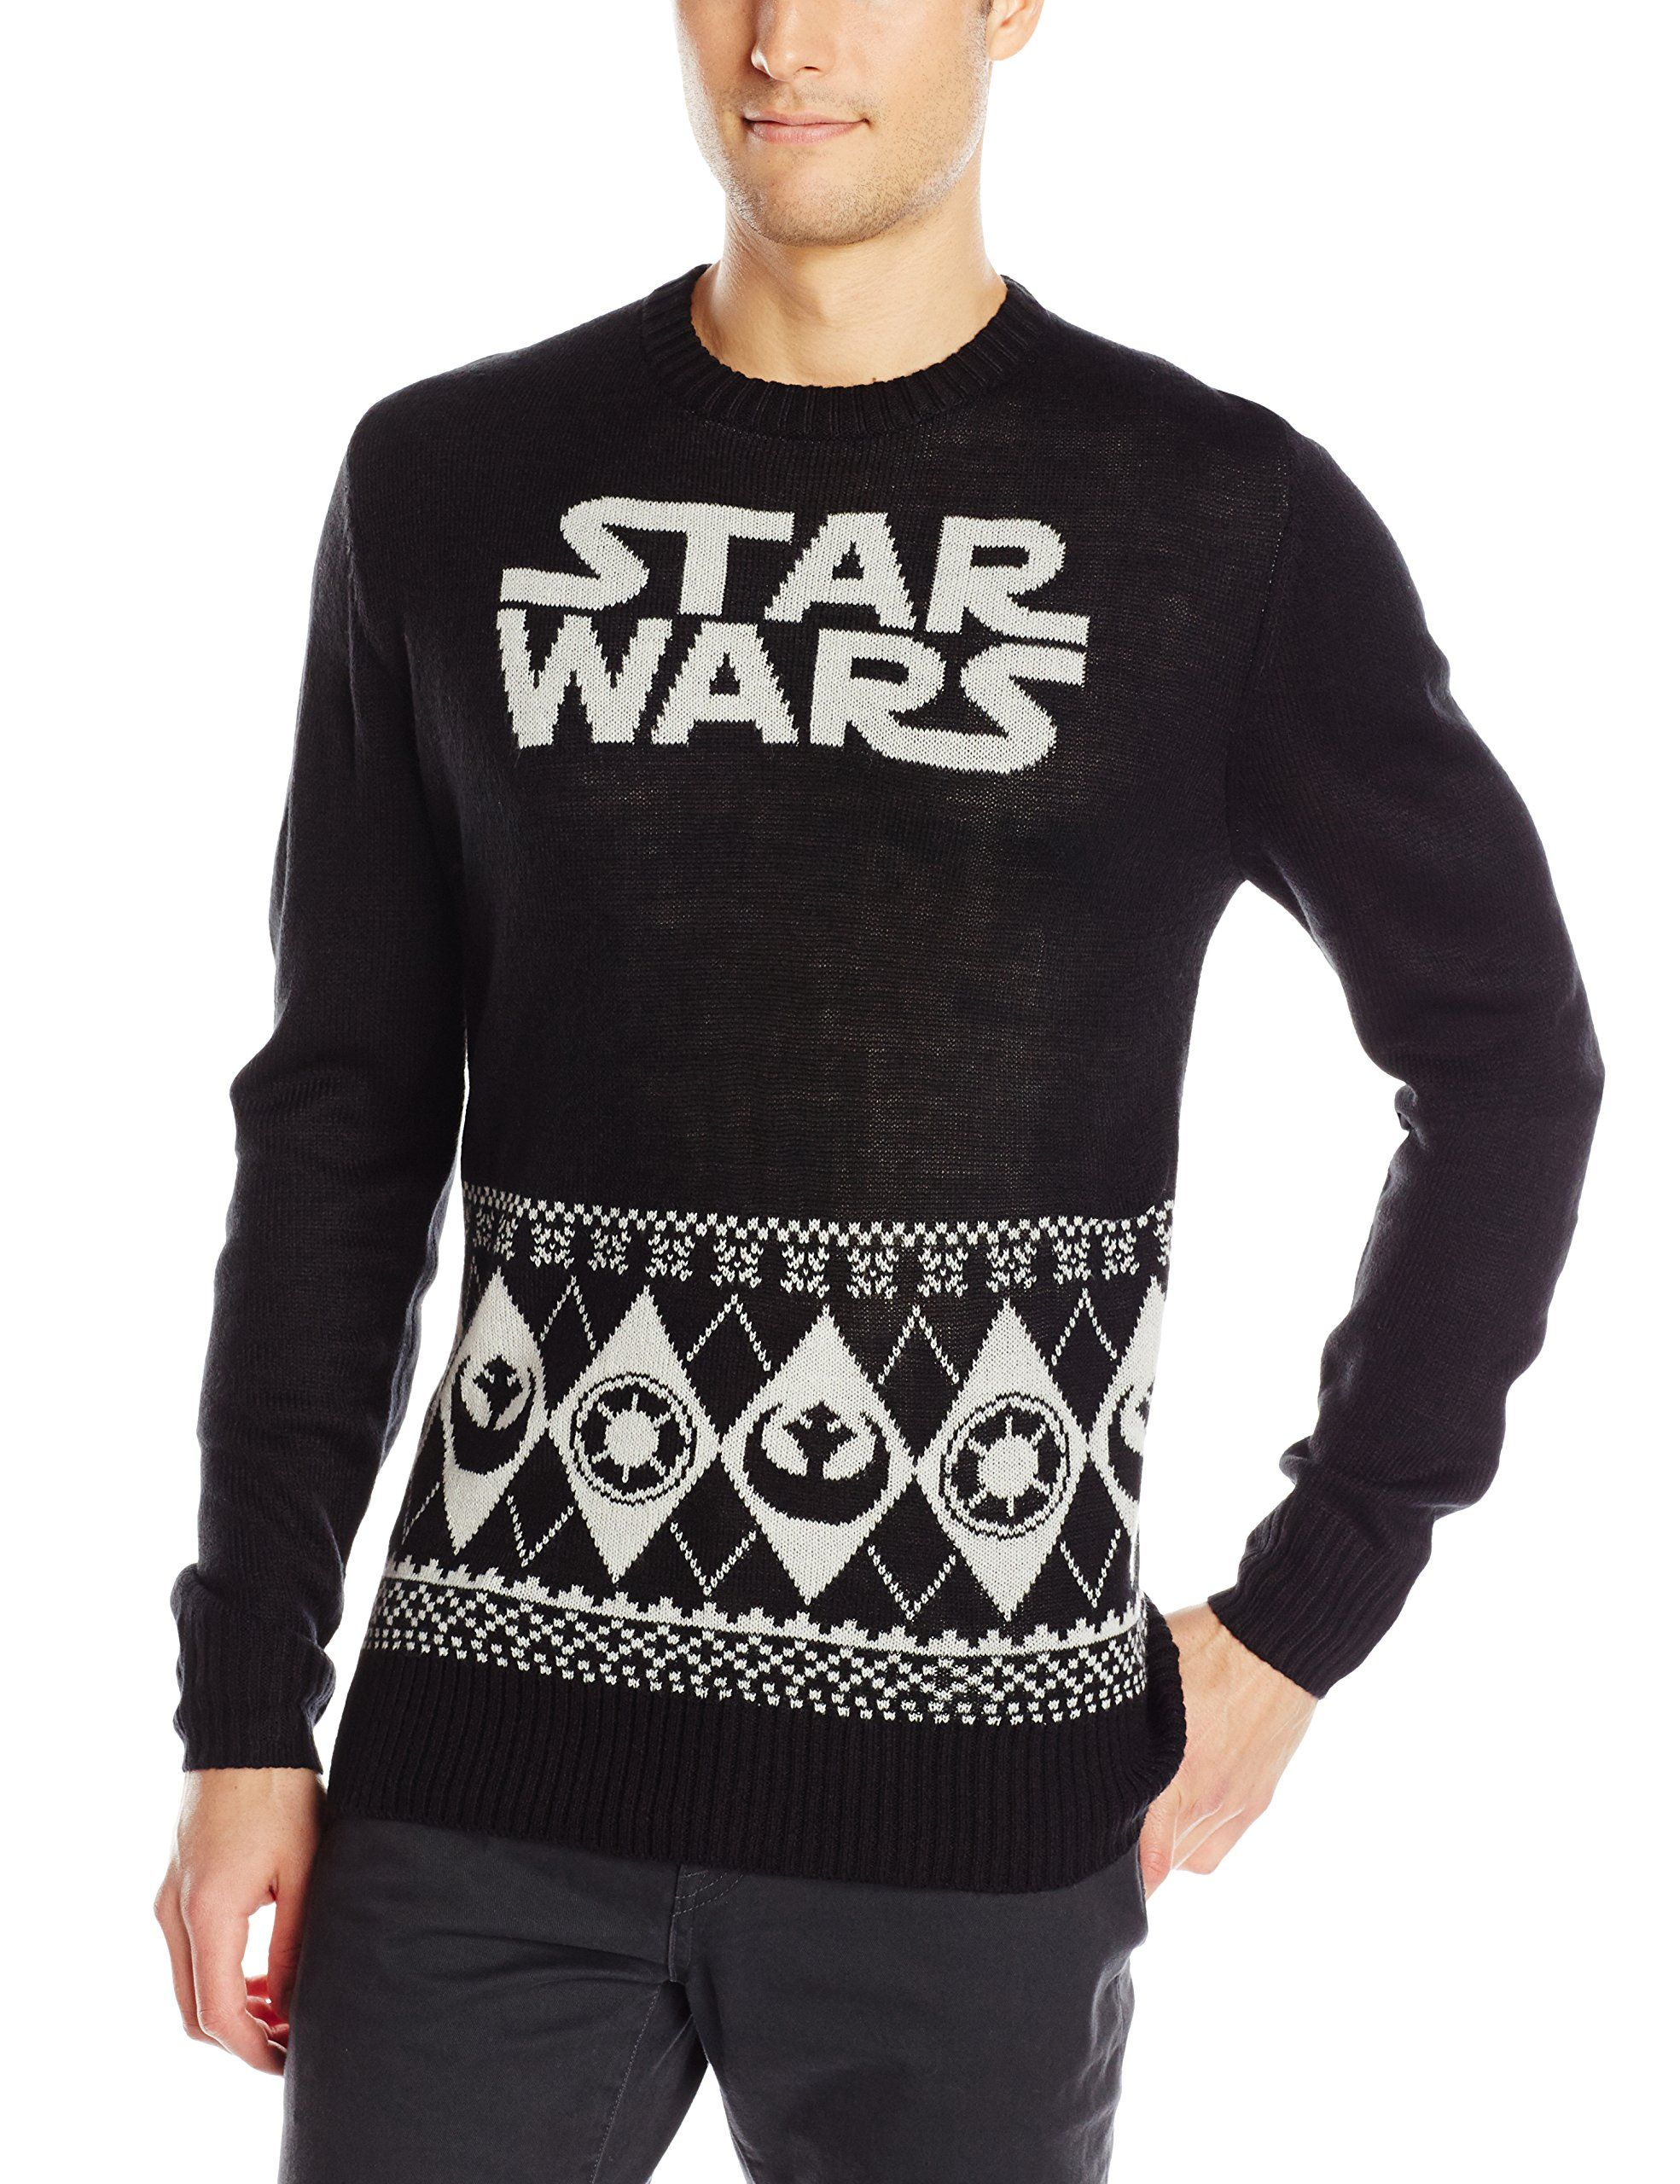 Inexpensive Ugly Christmas Sweaters